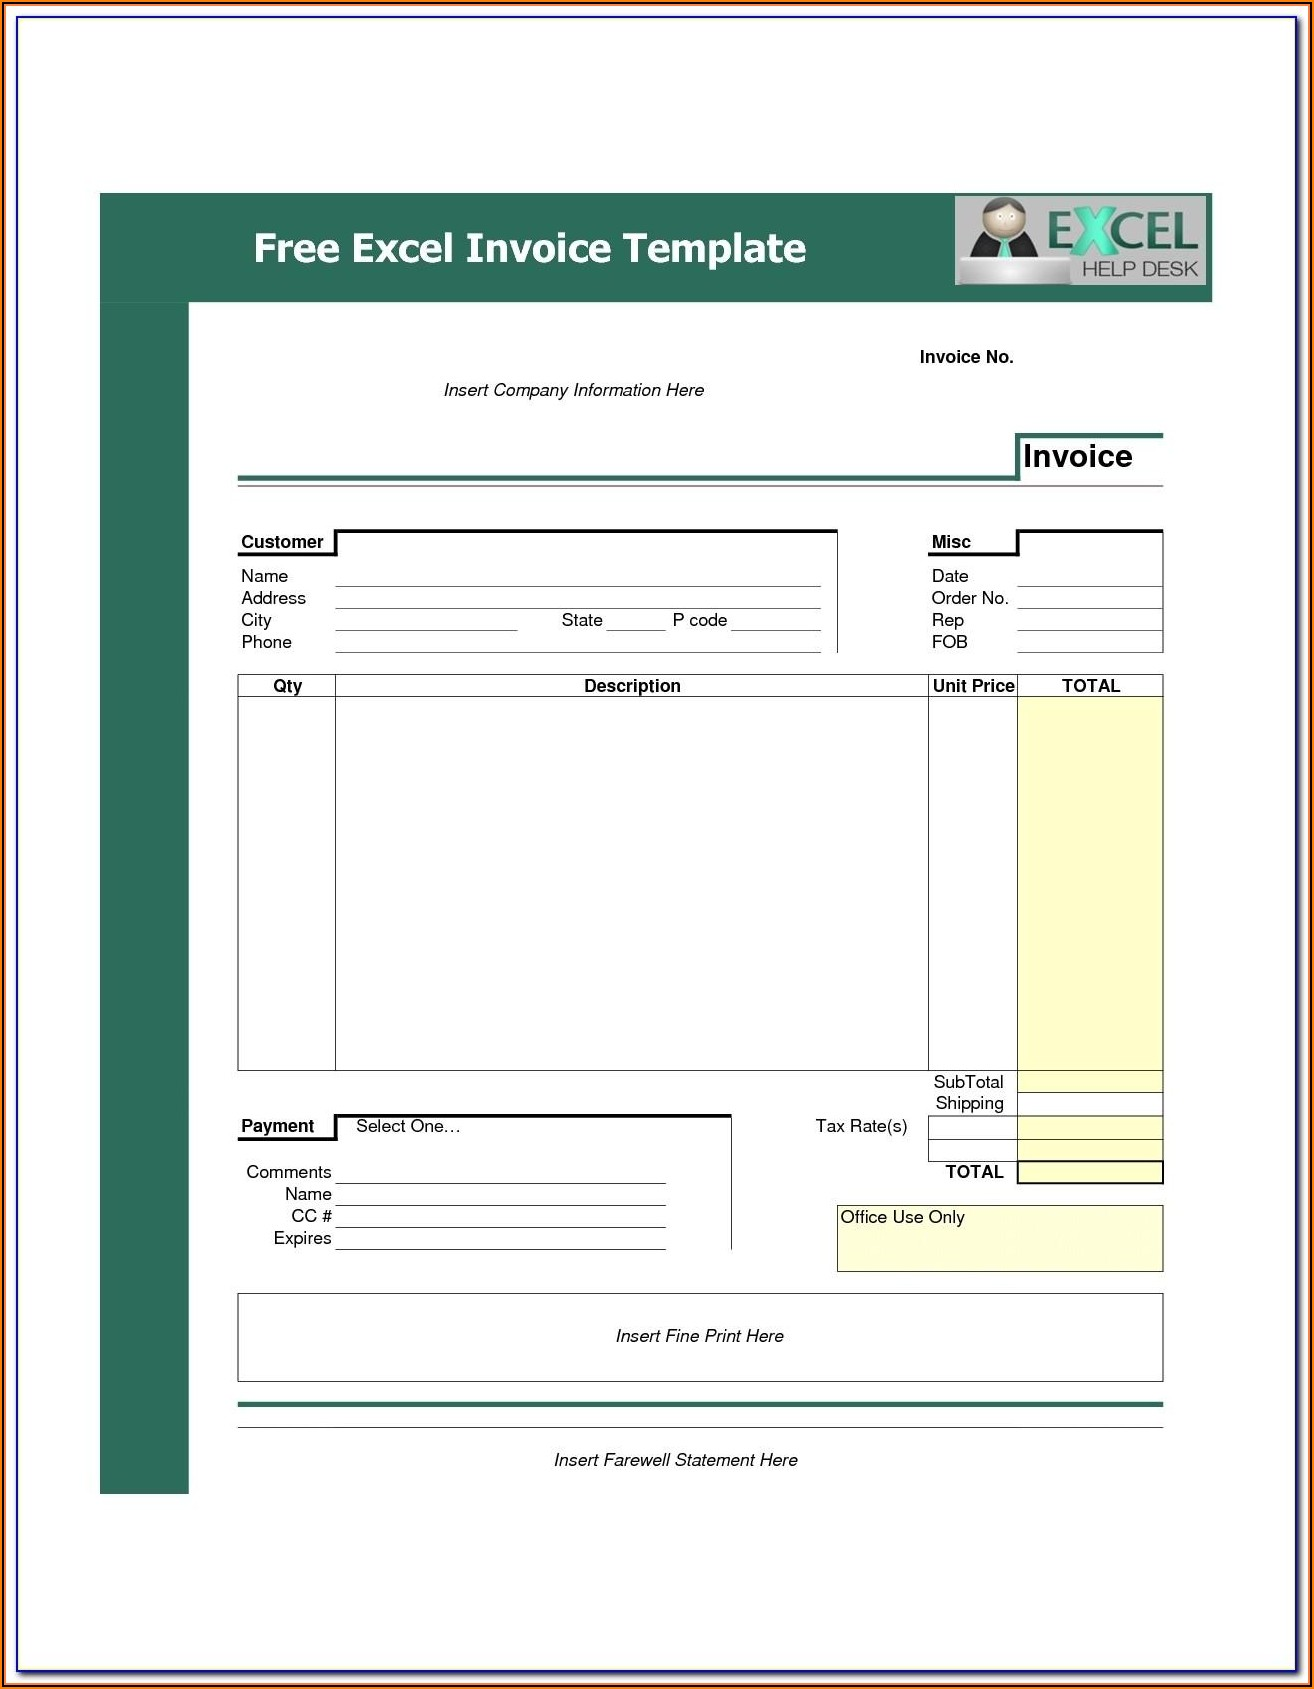 Rent Invoice Format In Excel Under Gst Tax